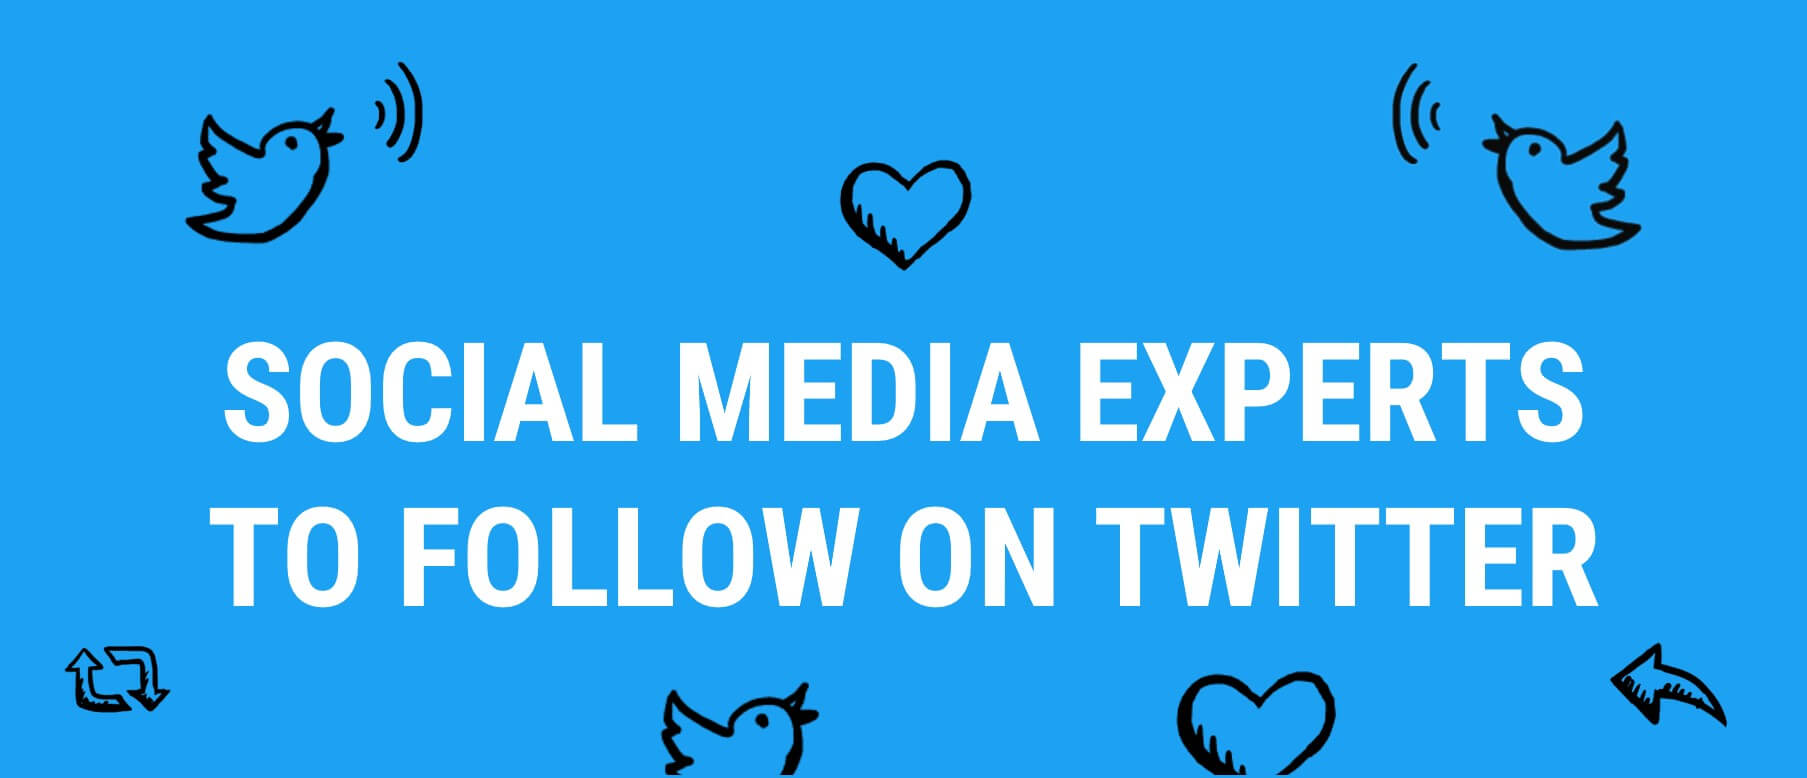 social-media-experts-to-follow-on-Twitter_social-media-analytics-in-NapoleonCat